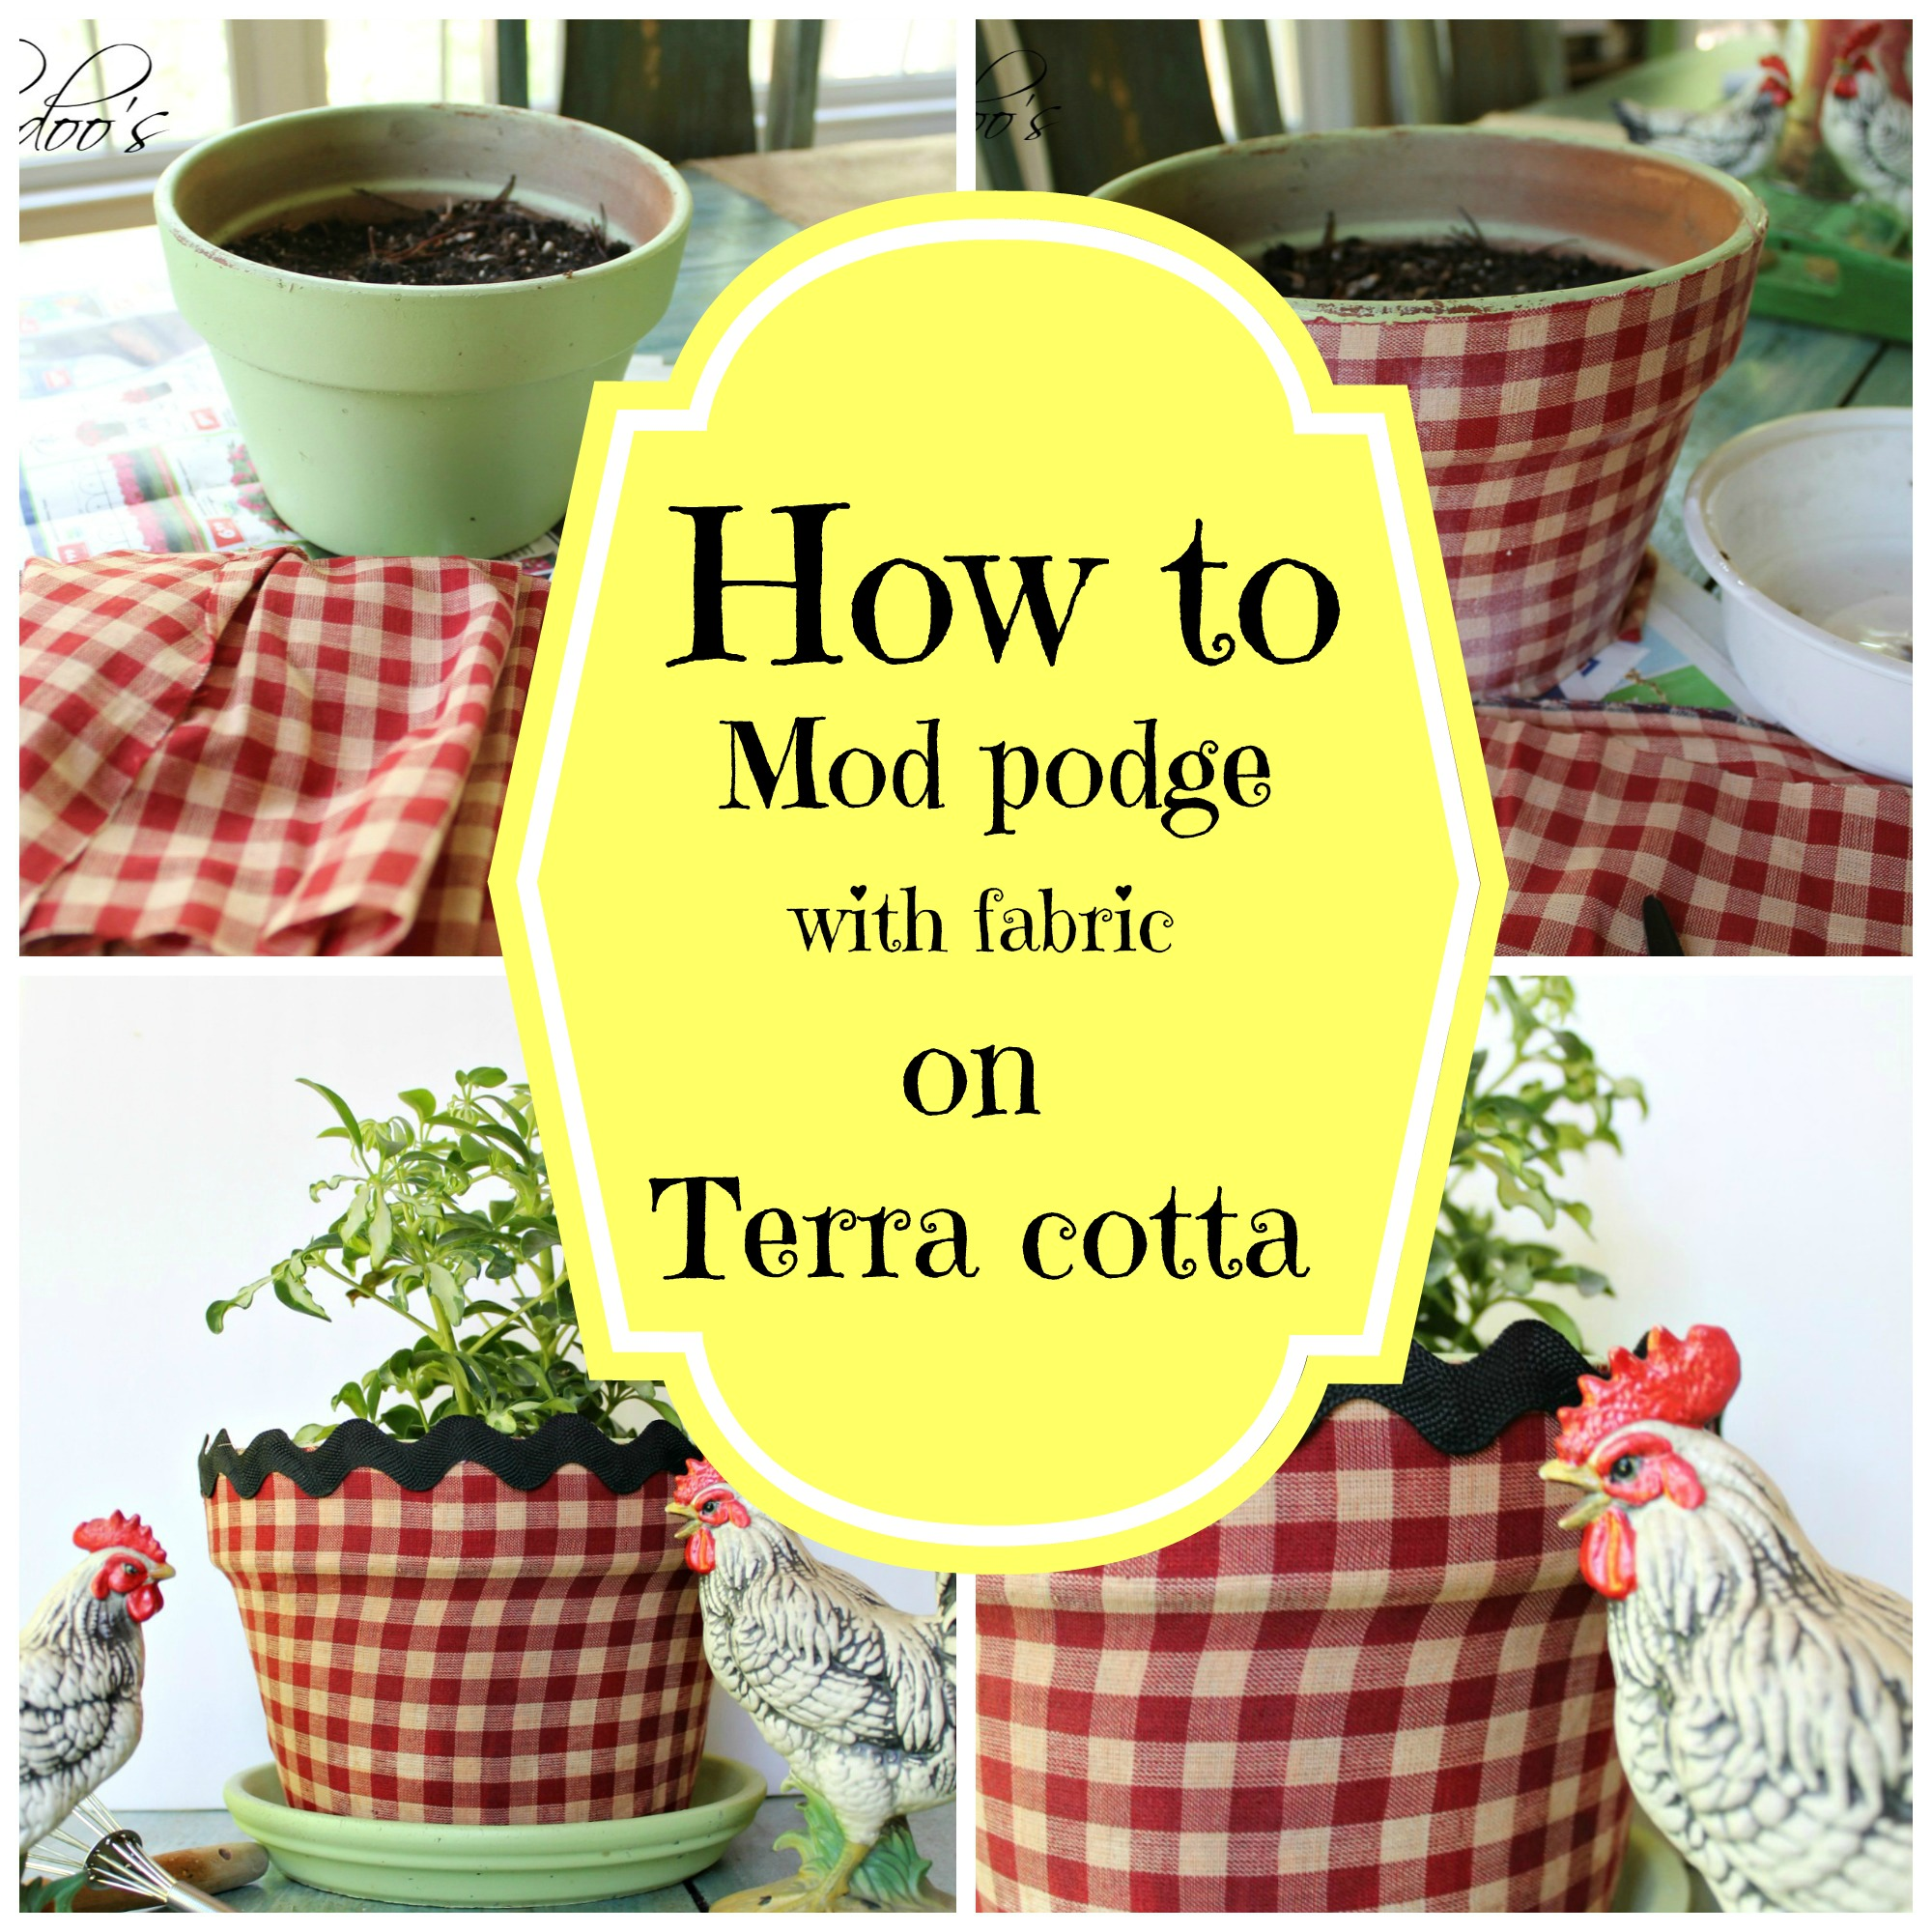 How to mod podge a terra cotta pot with fabric - Debbiedoo's